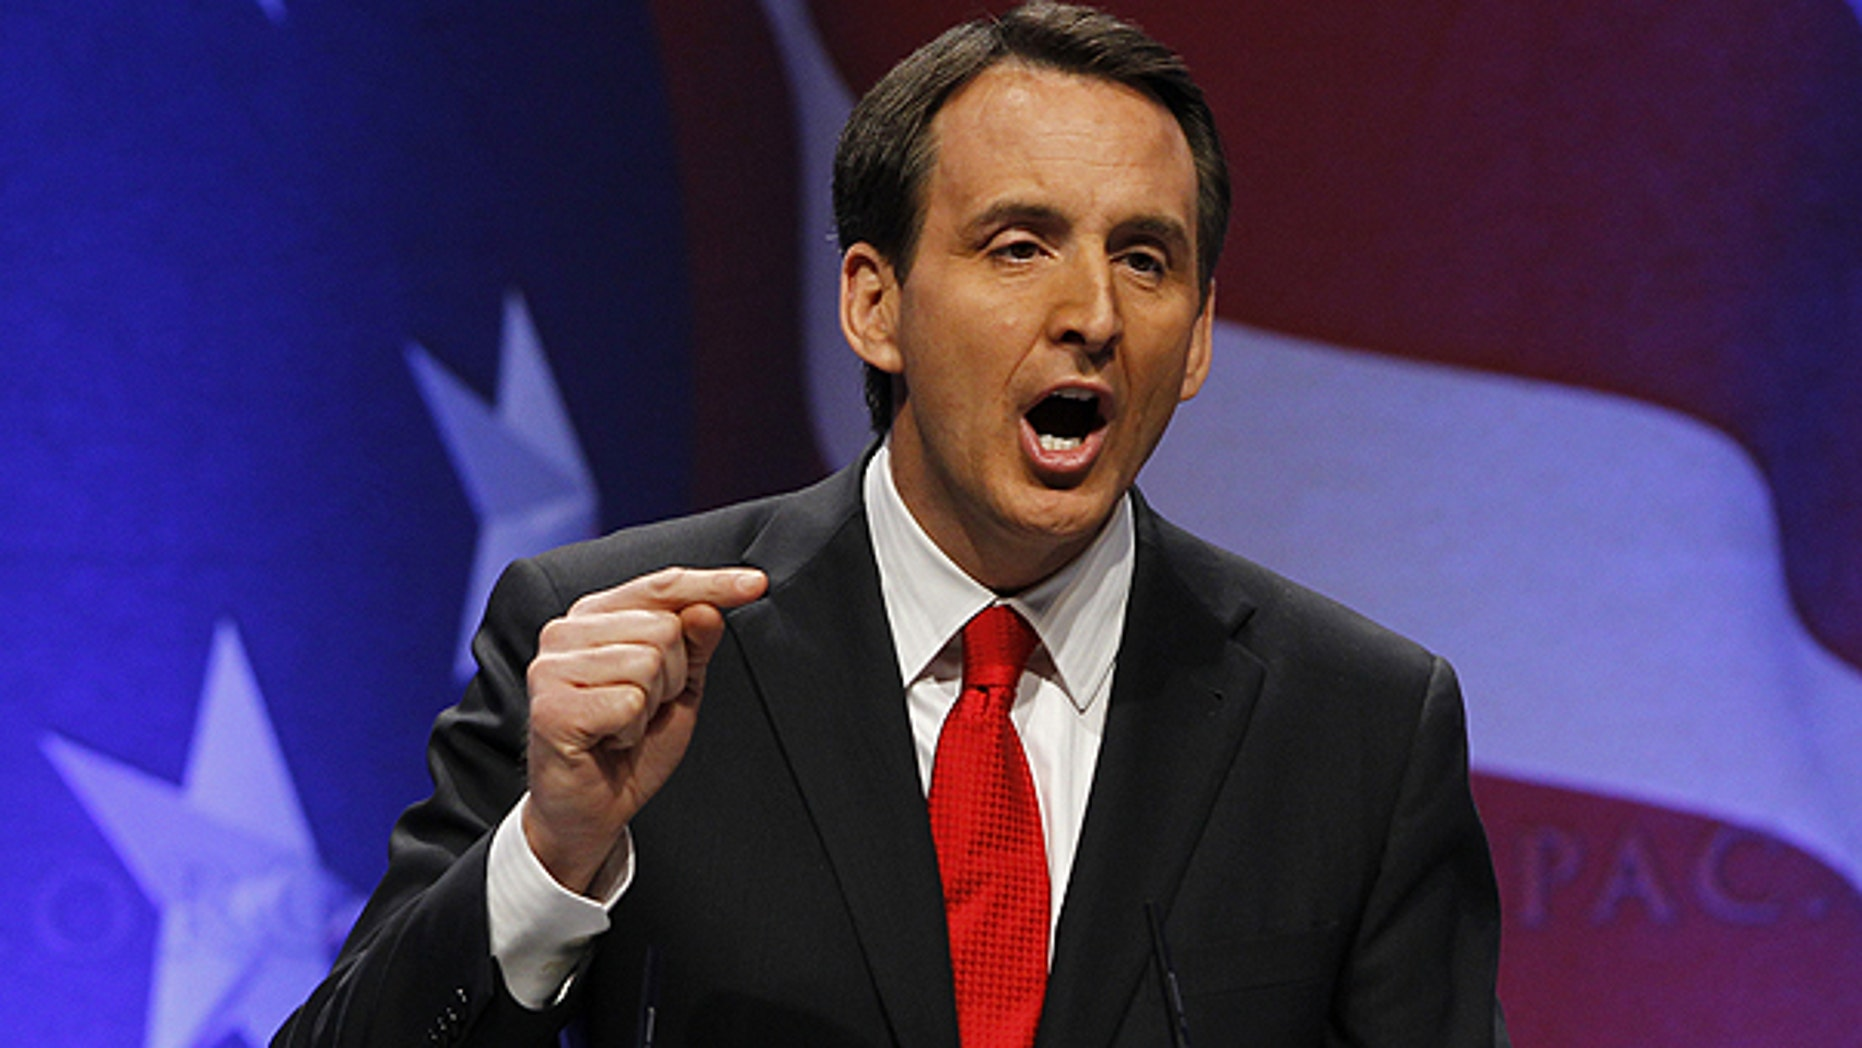 Feb. 11: Former Minnesota Gov. Tim Pawlenty, speaks at the Conservative Political Action Conference (CPAC) in Washington.